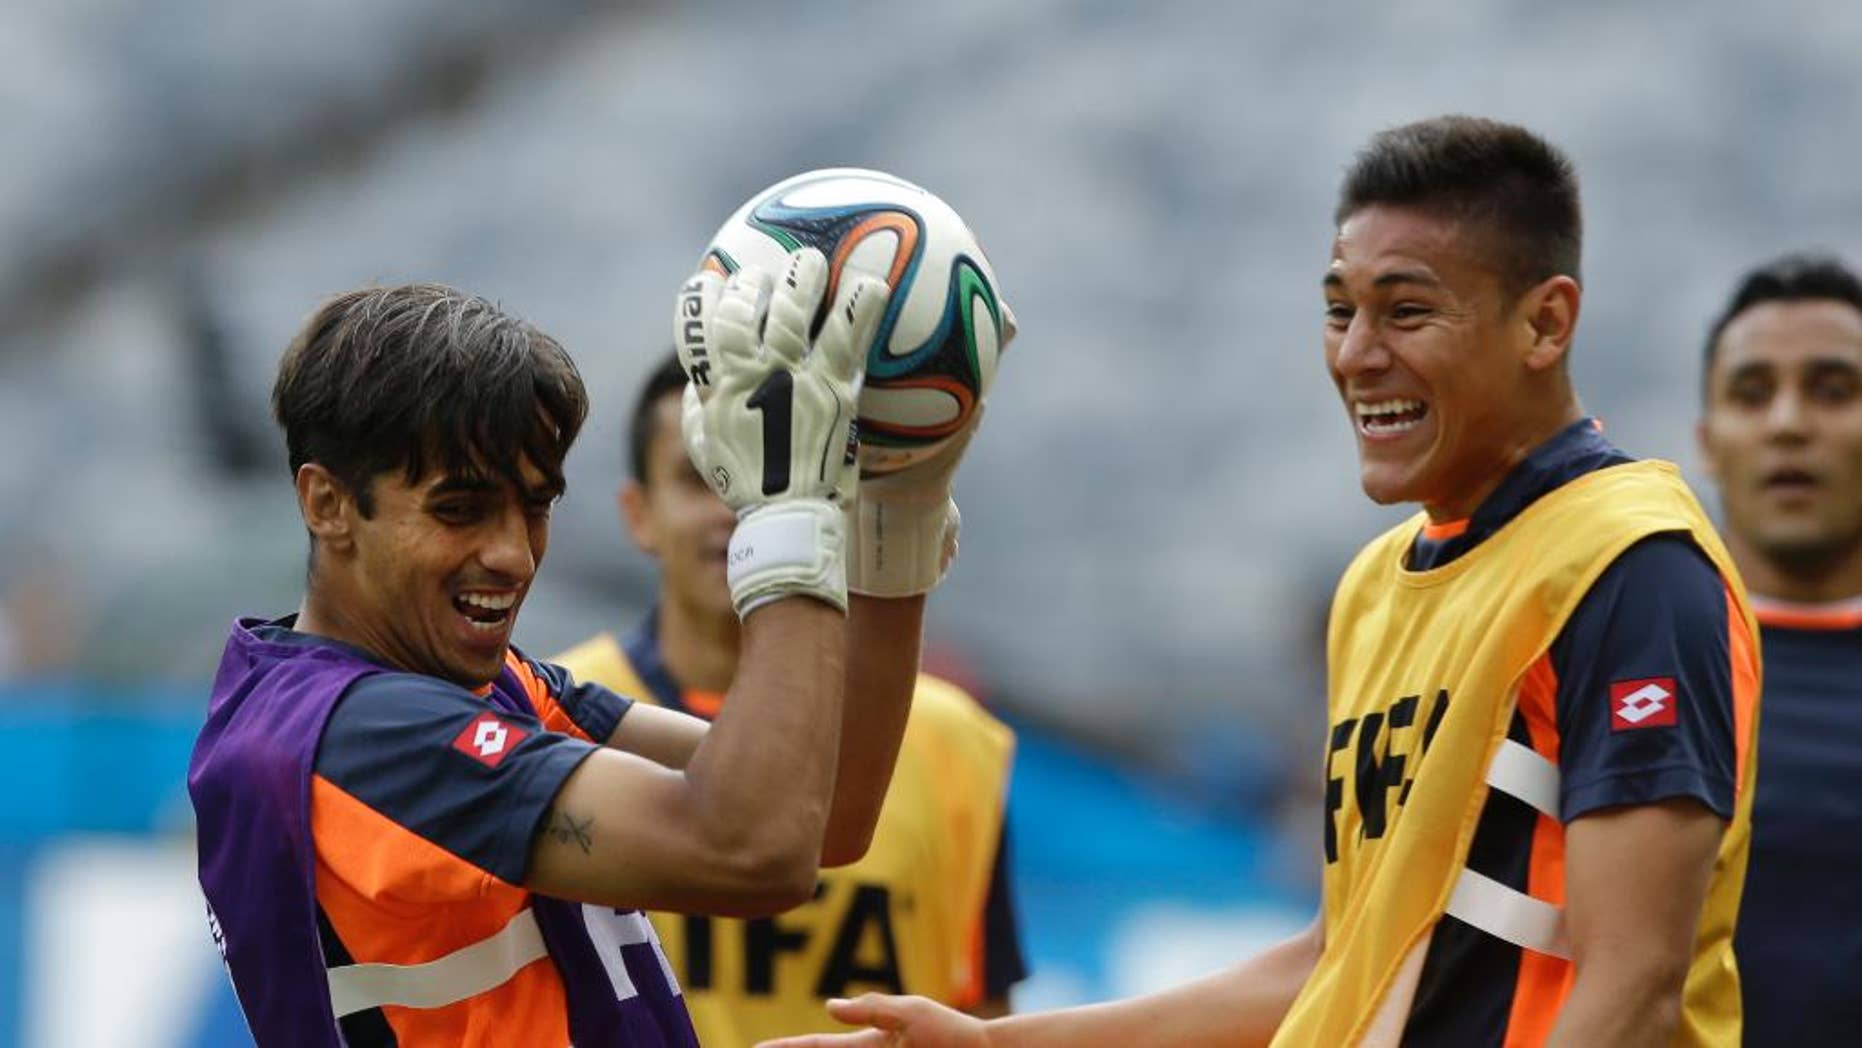 Costa Rica's captain and attacking player Bryan Ruiz, left, catches the ball whilst playing as a goalkeeper during an official training session the day before the group D World Cup soccer match between Costa Rica and England at the Mineirao Stadium in Belo Horizonte, Brazil, Monday, June 23, 2014. (AP Photo/Matt Dunham)